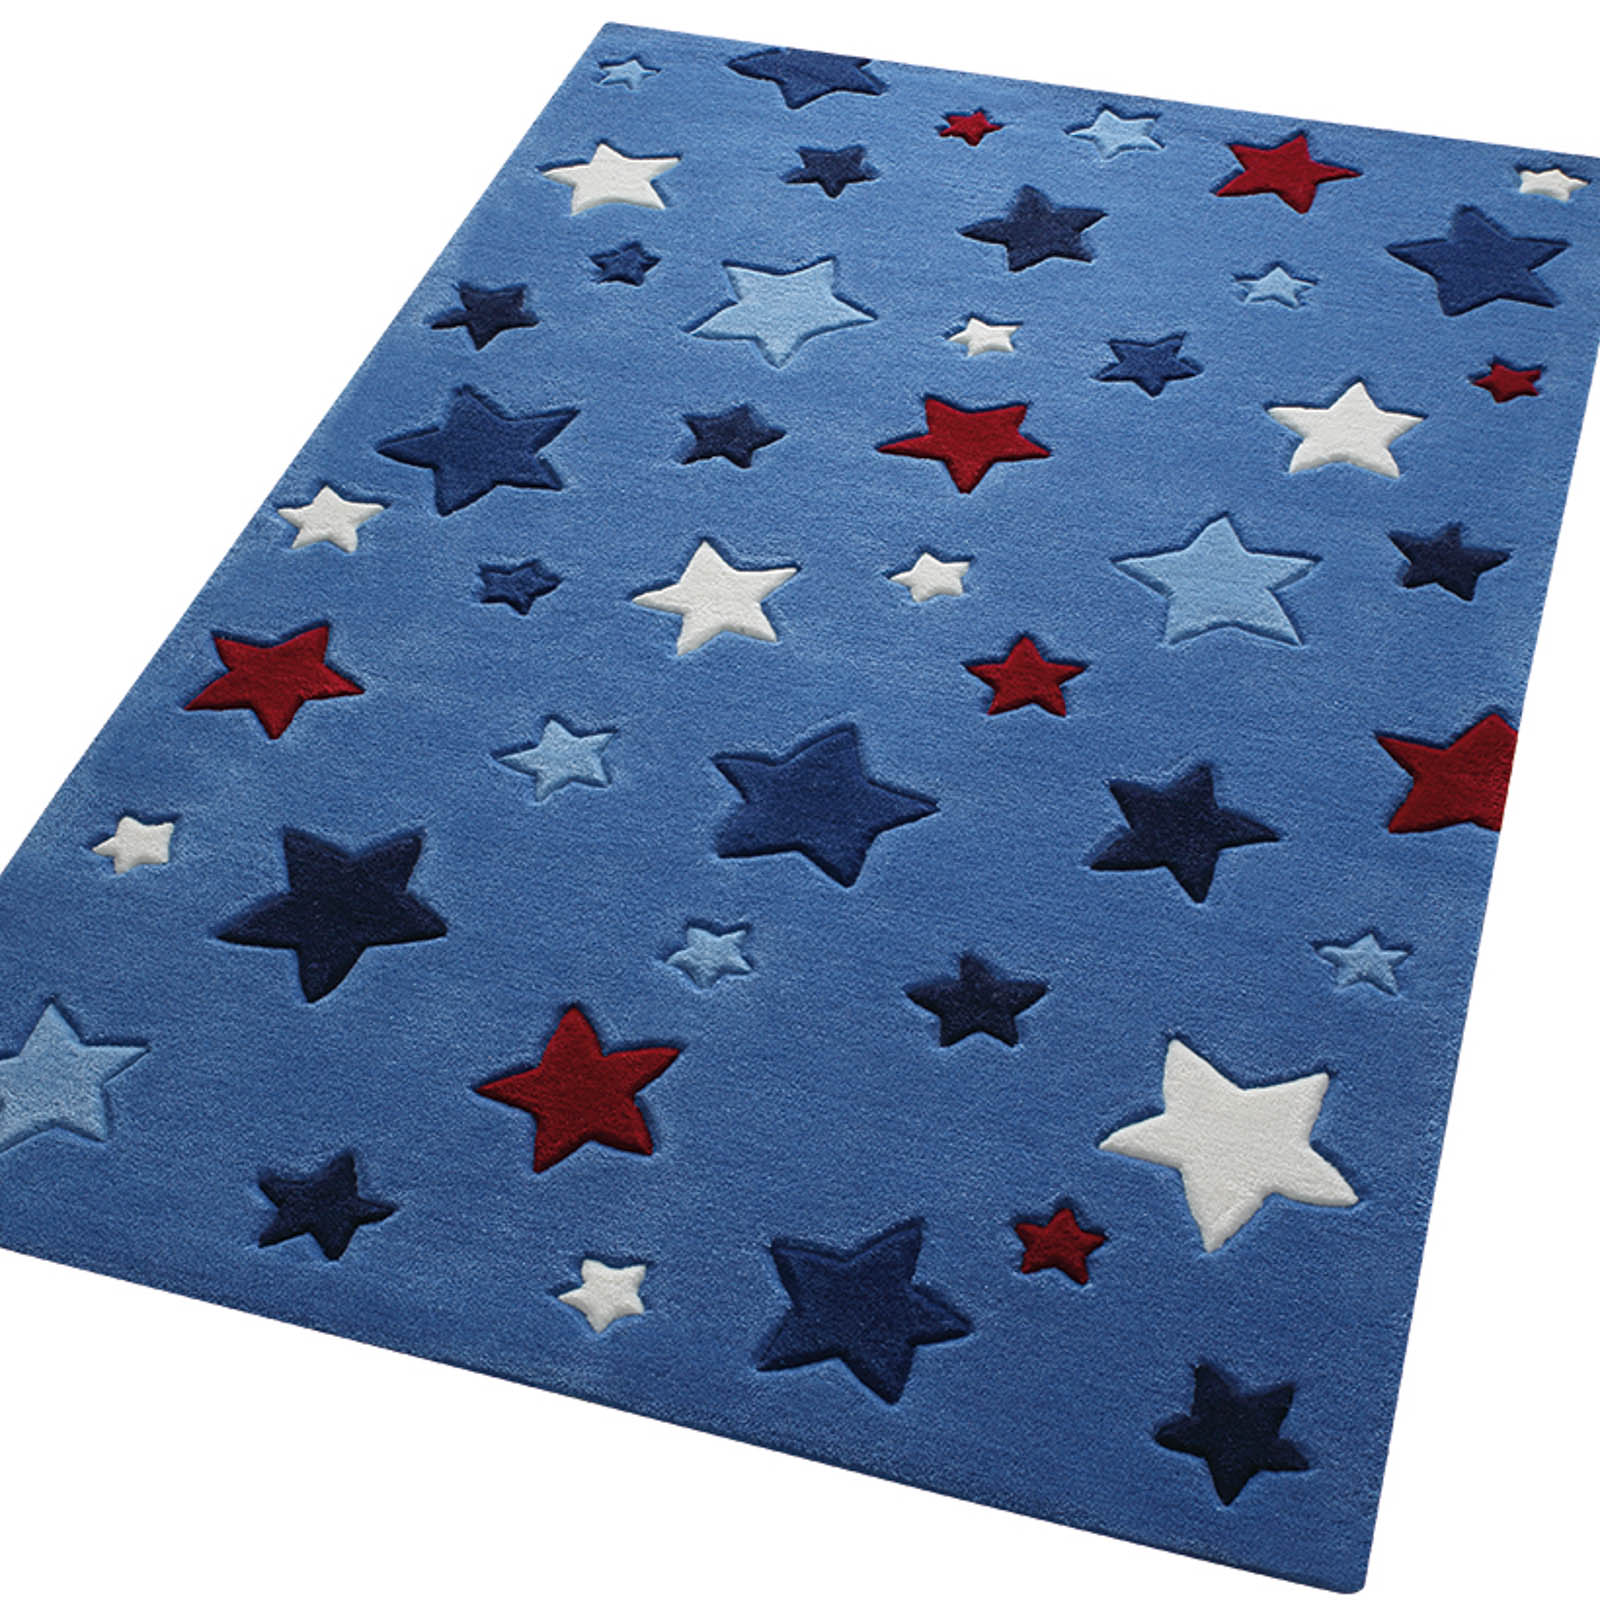 Simple Stars 3984 11 in Blue